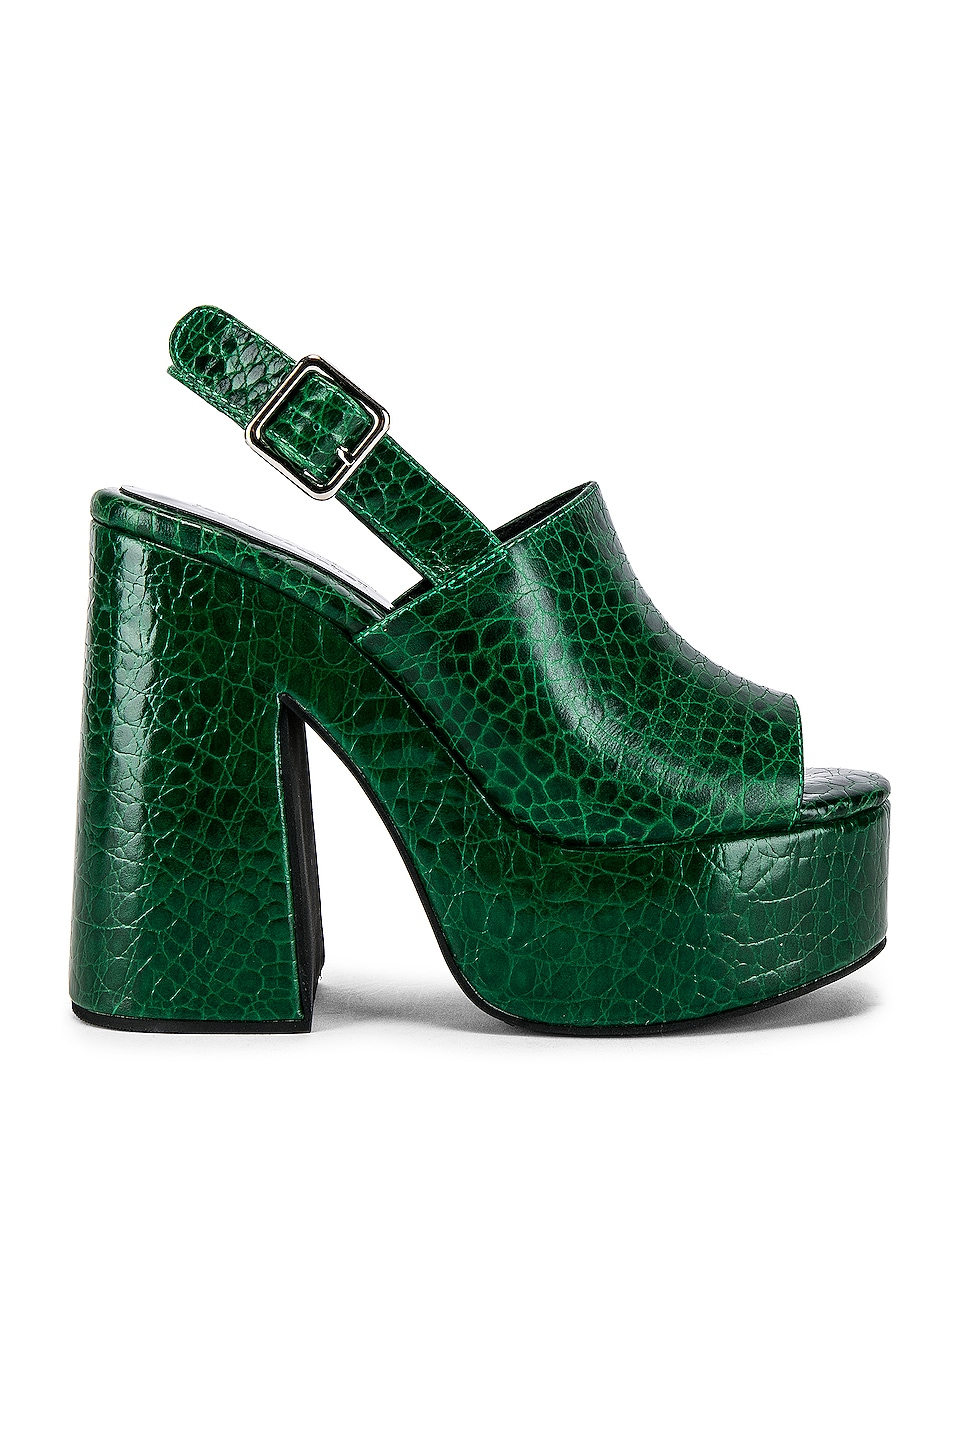 Jeffrey Campbell Mattix Platform in Green Gator